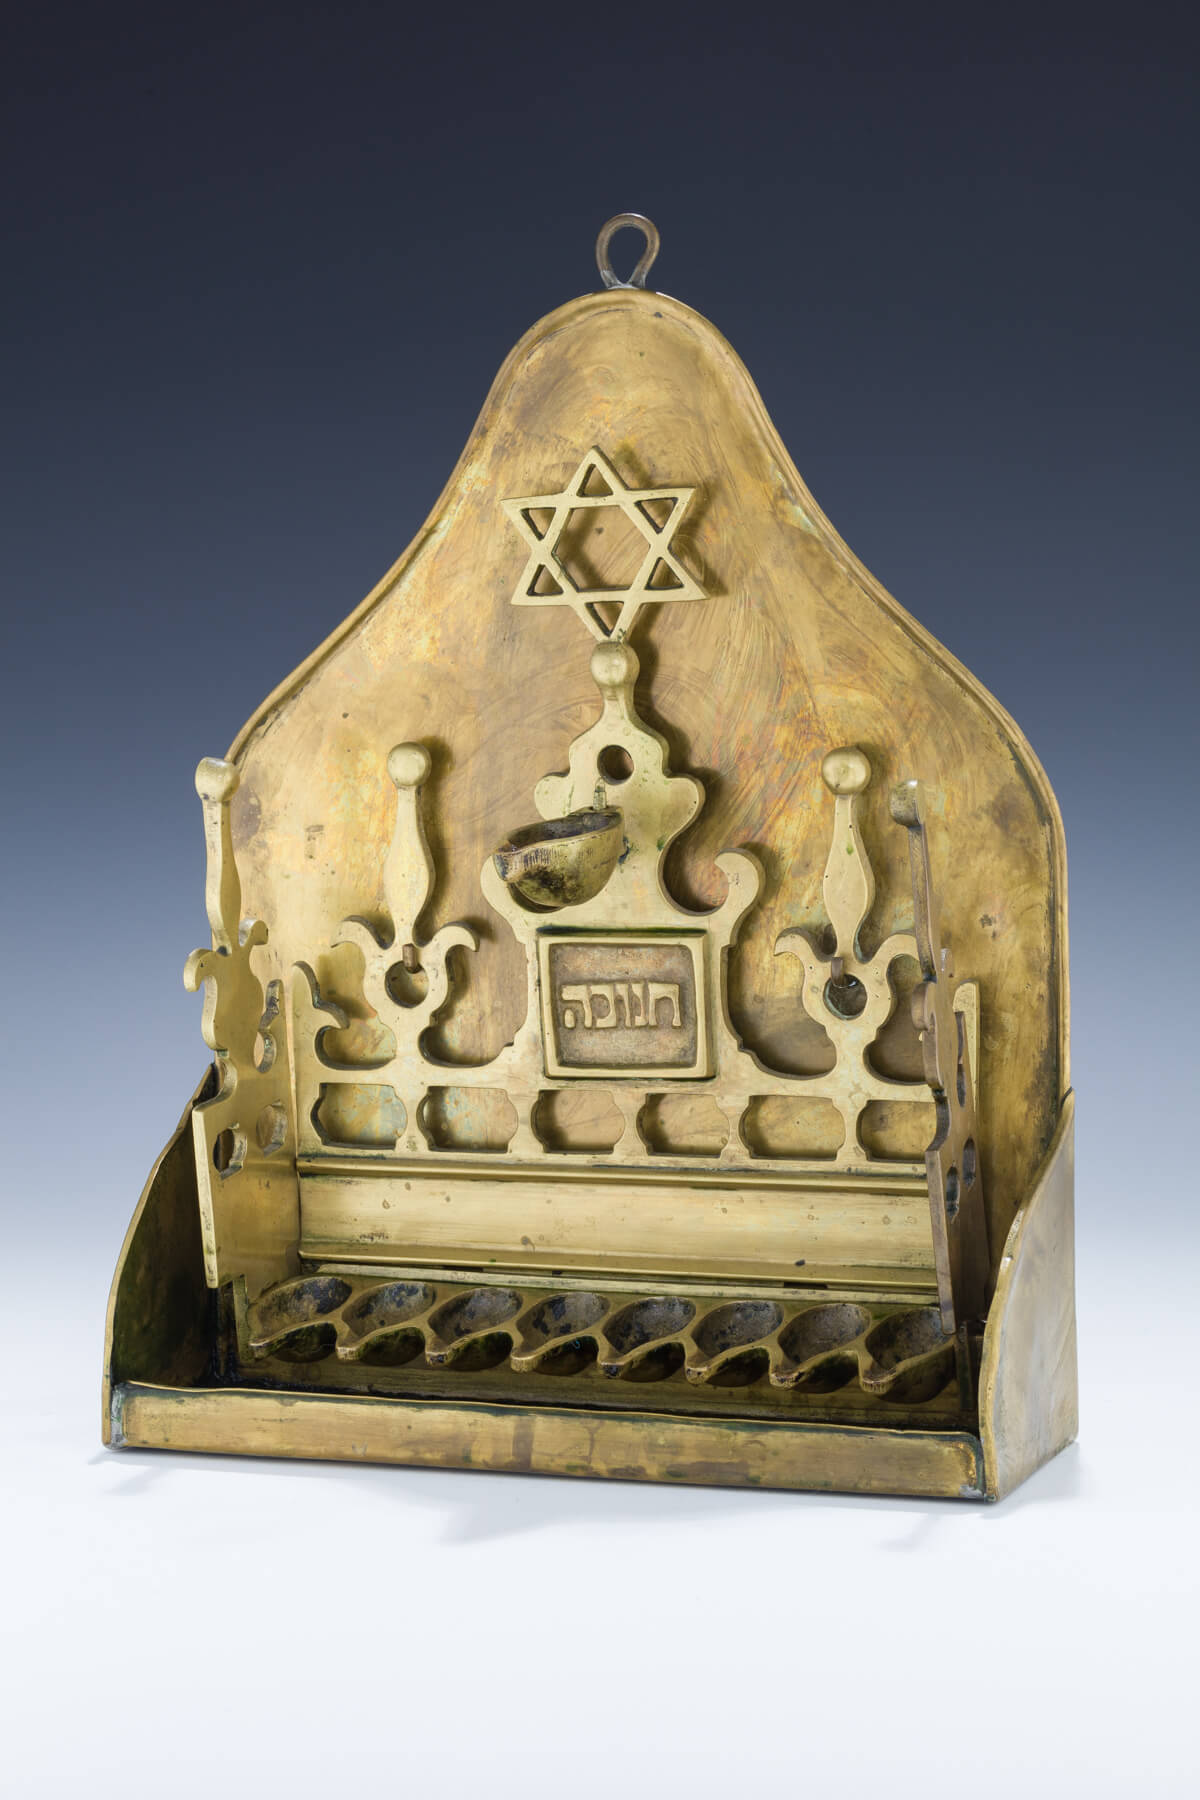 086. A Large Brass Hanukkah Lamp